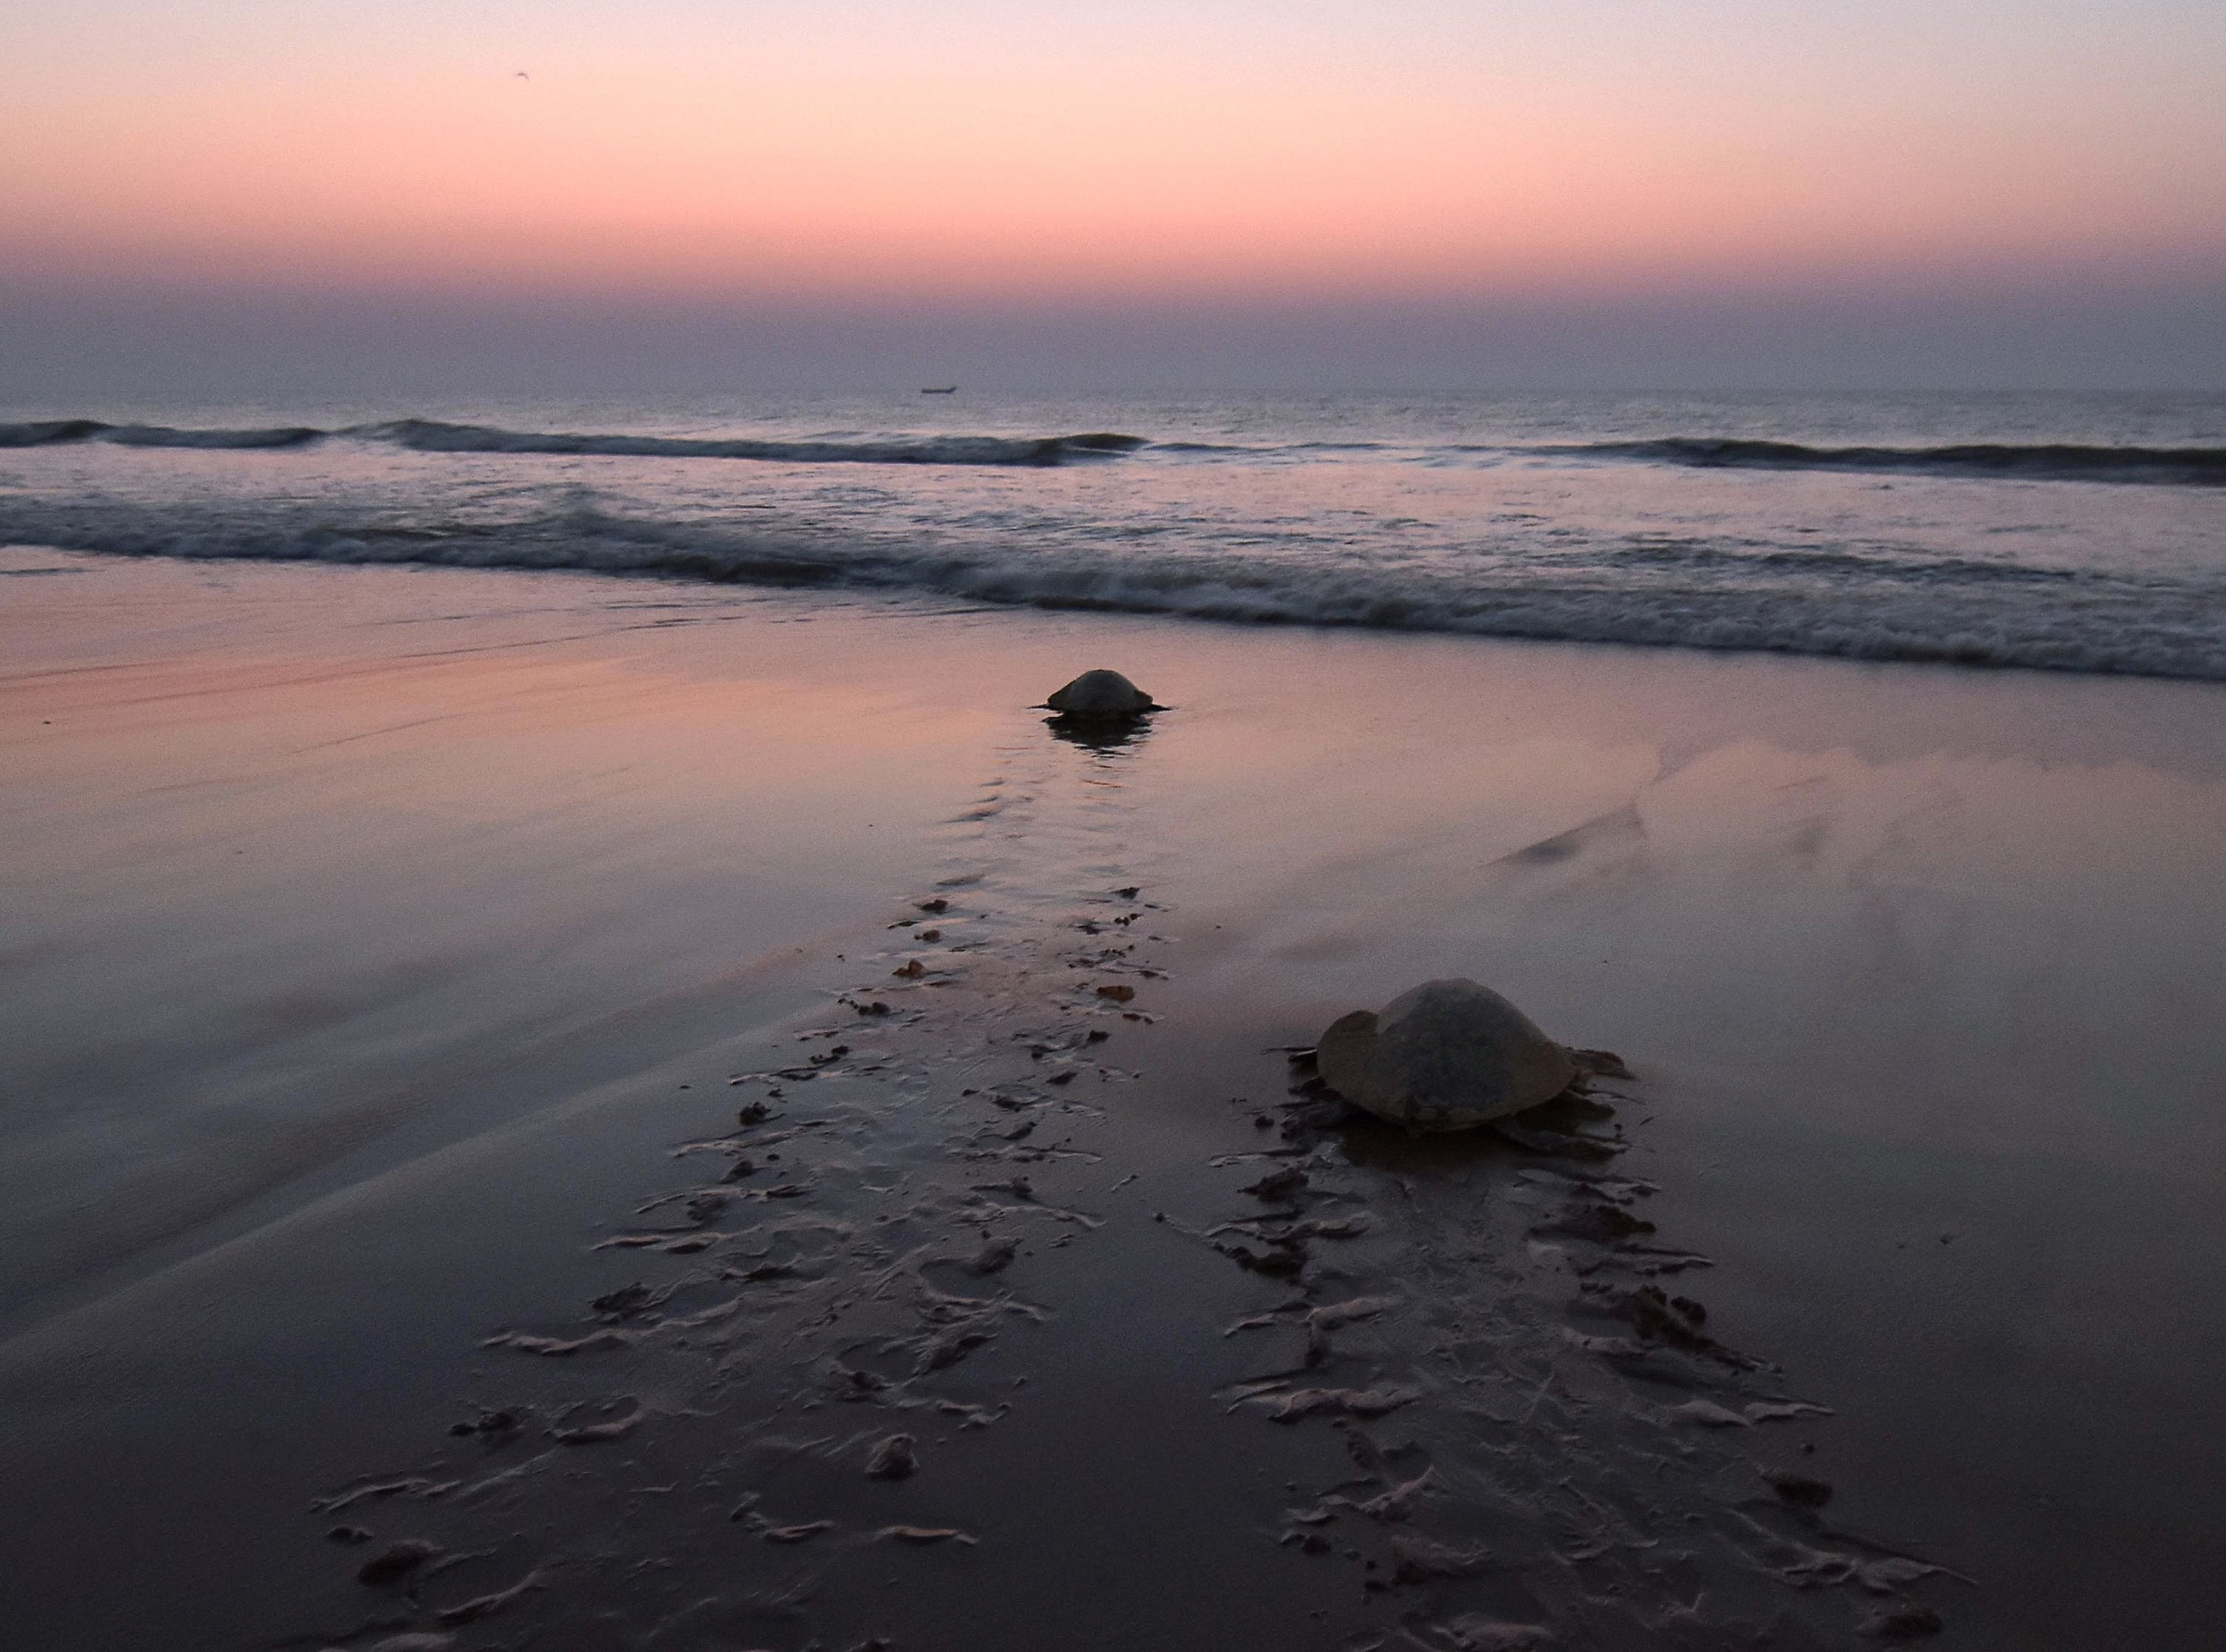 Feb. 23, 2018: Olive Ridley sea turtles return to the sea after laying eggs on Rushikulya Beach in India.